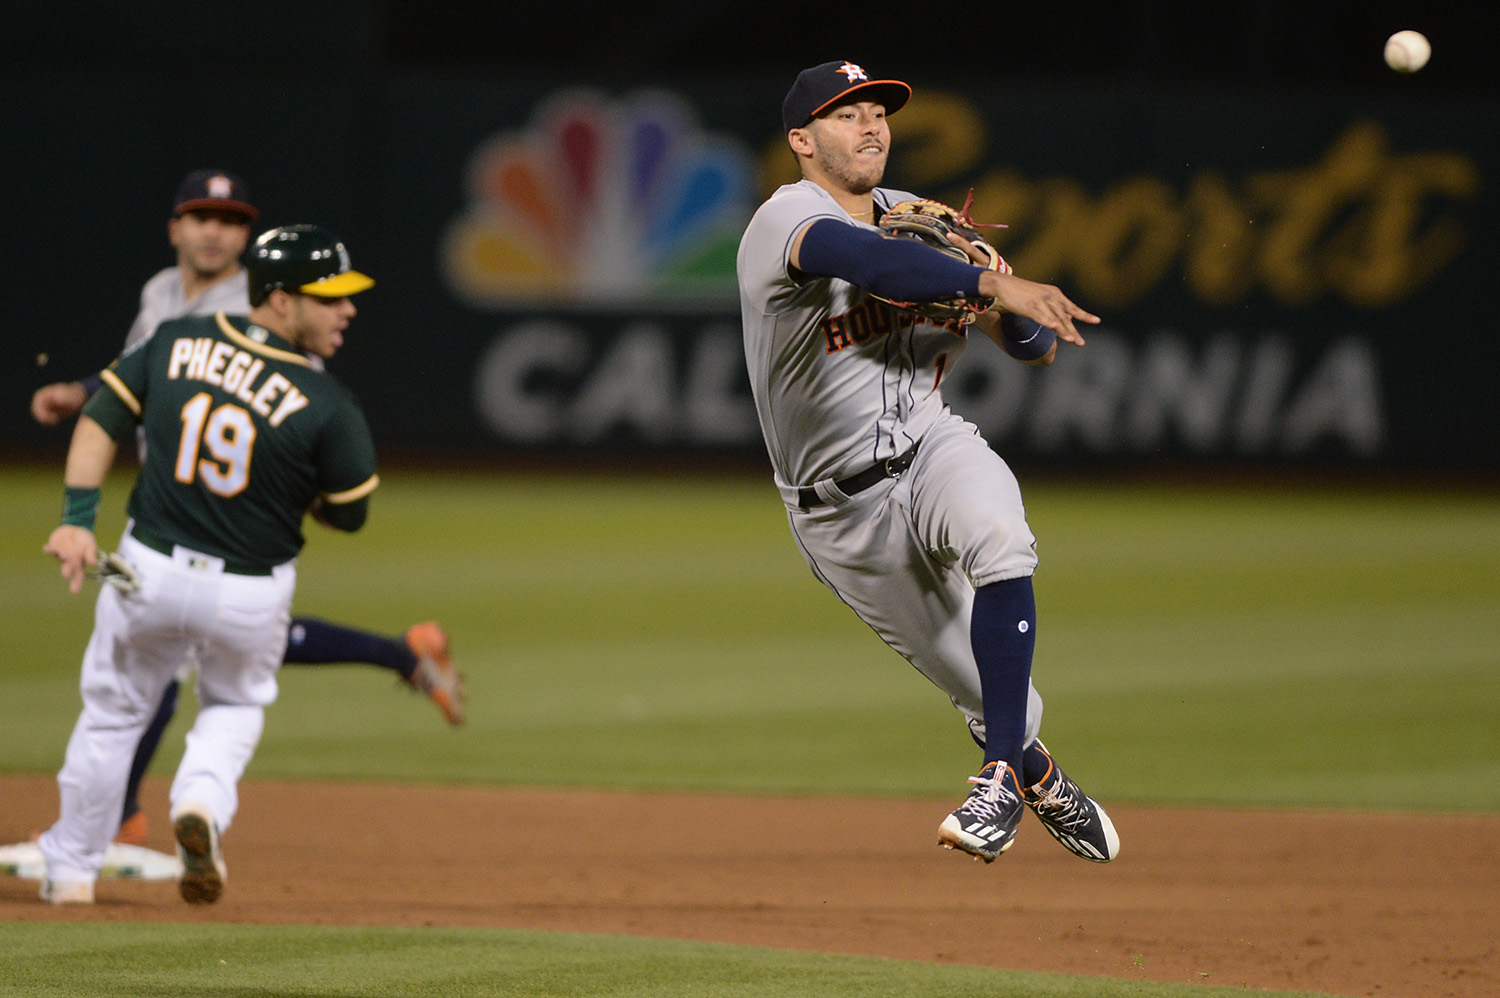 Houston Astros vs Oakland Athletics